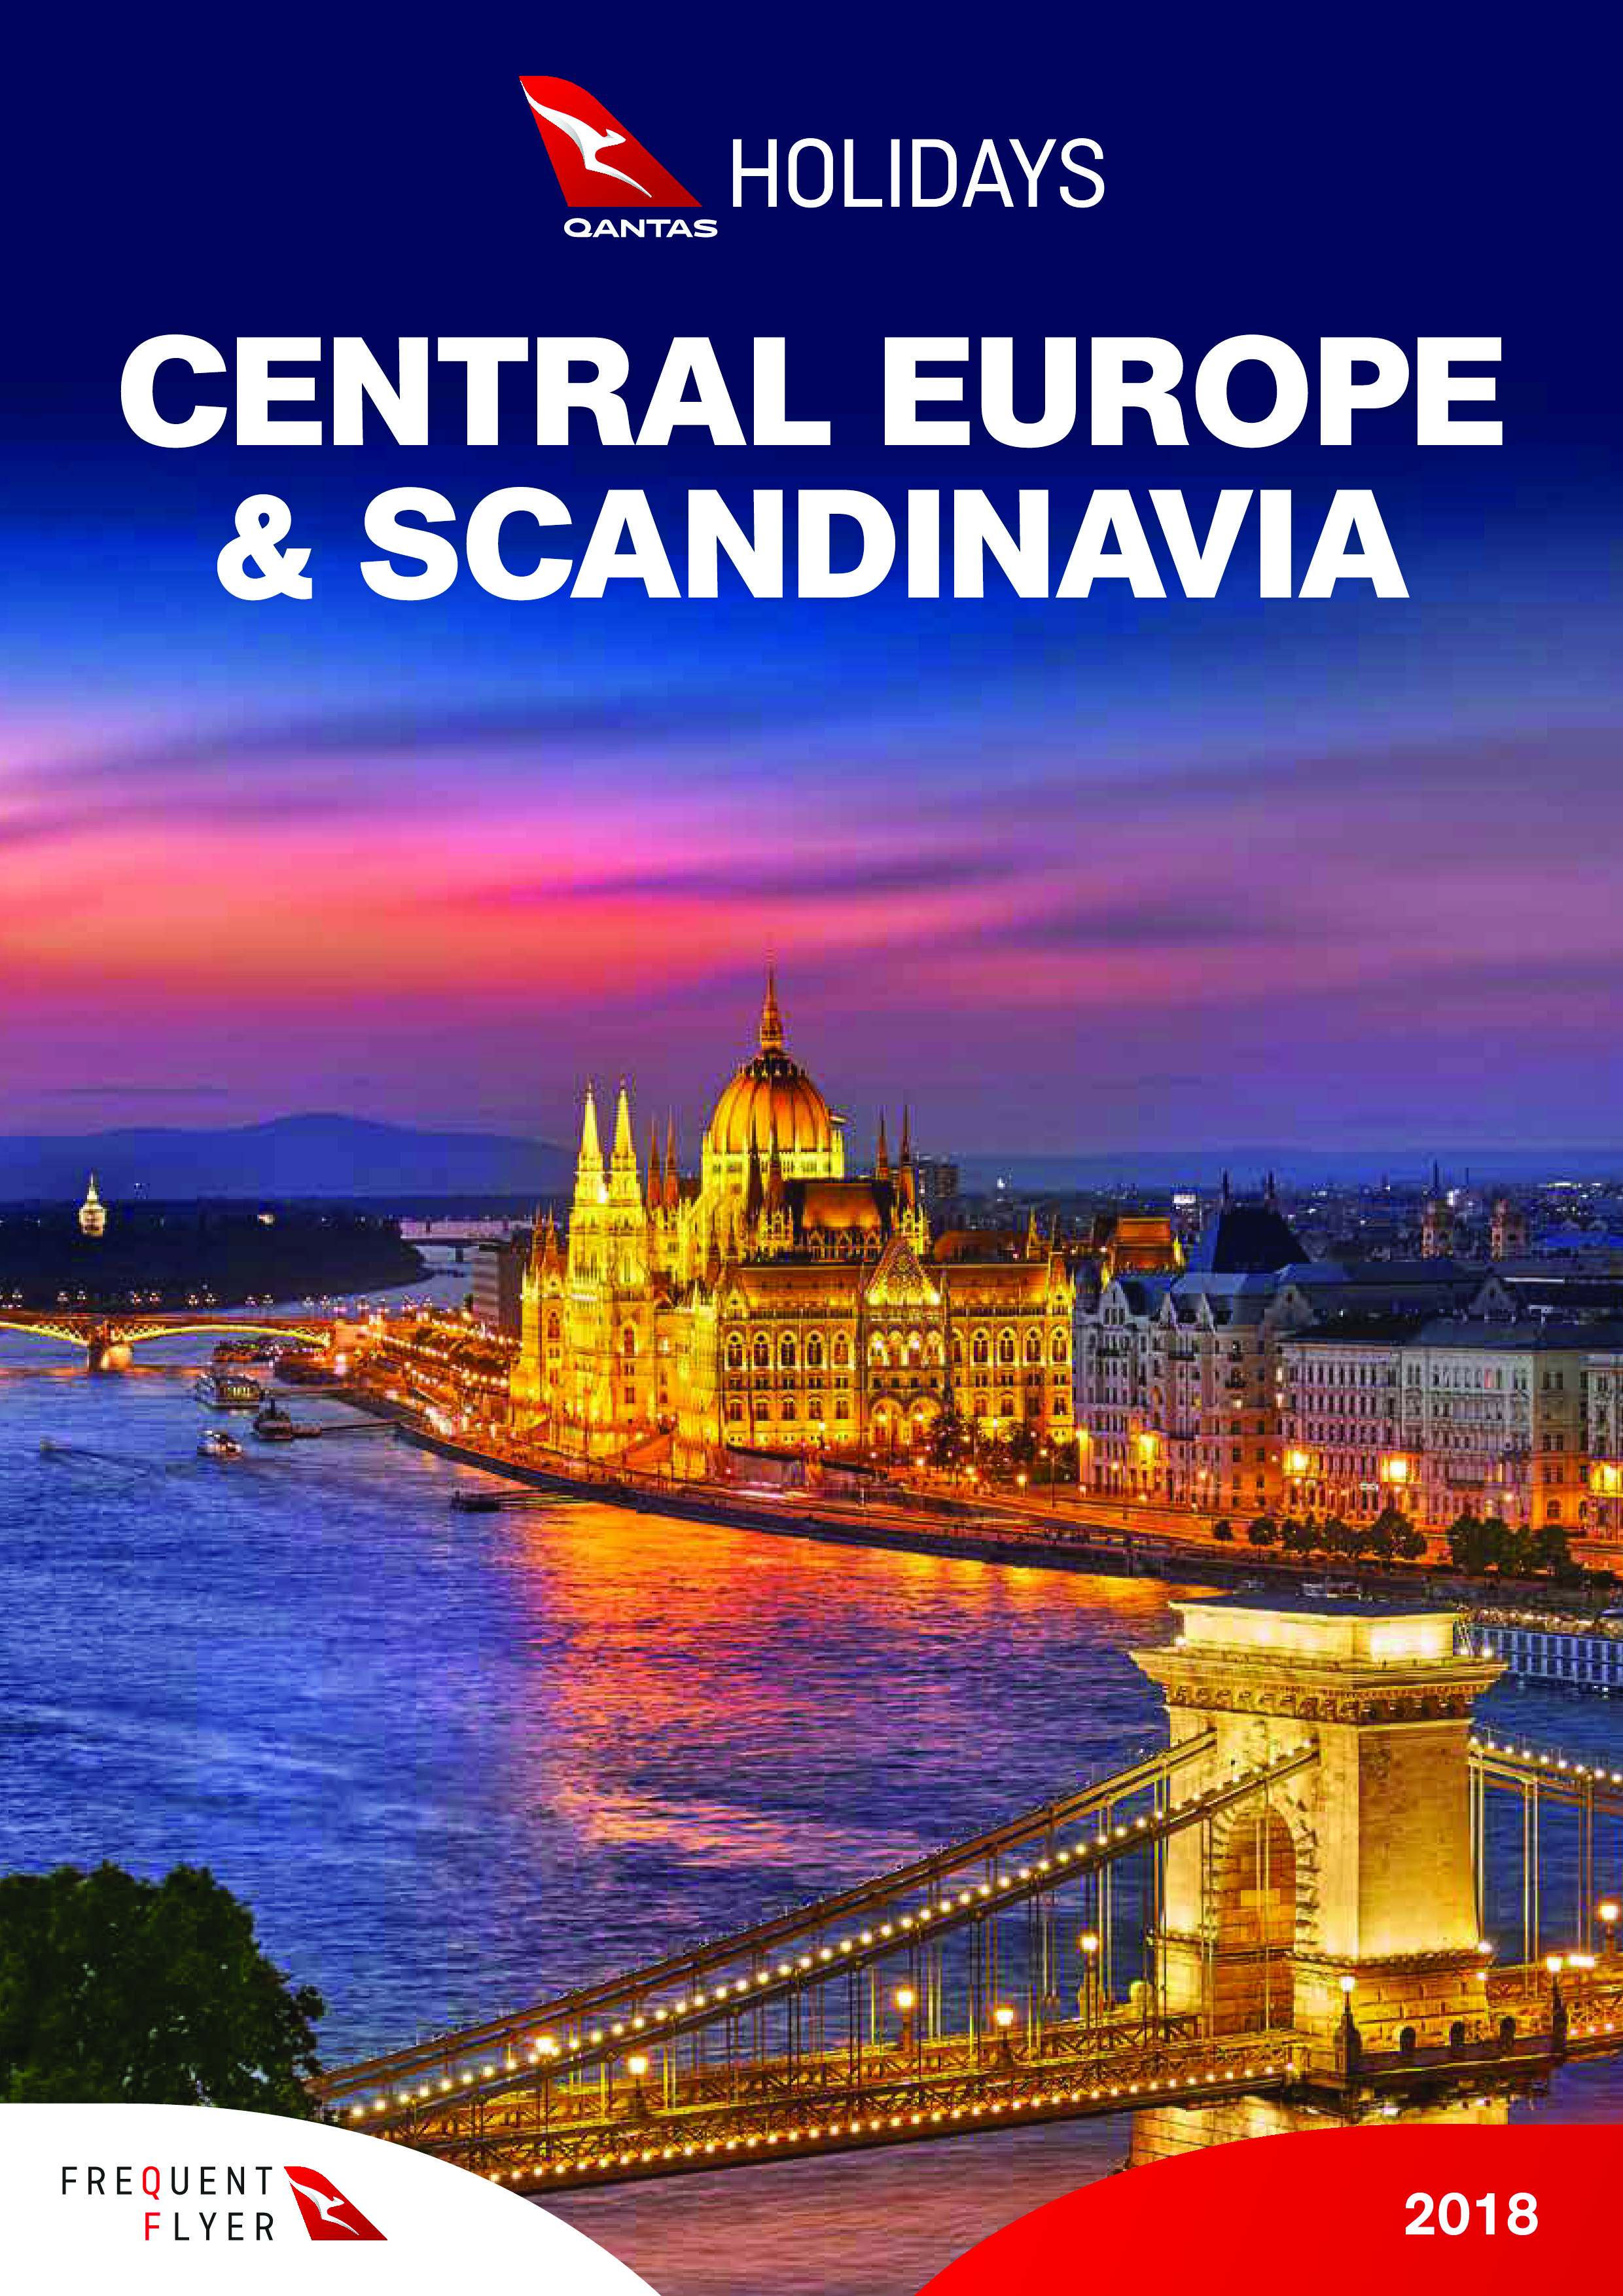 CENTRAL EUROPE-page-0.jpg